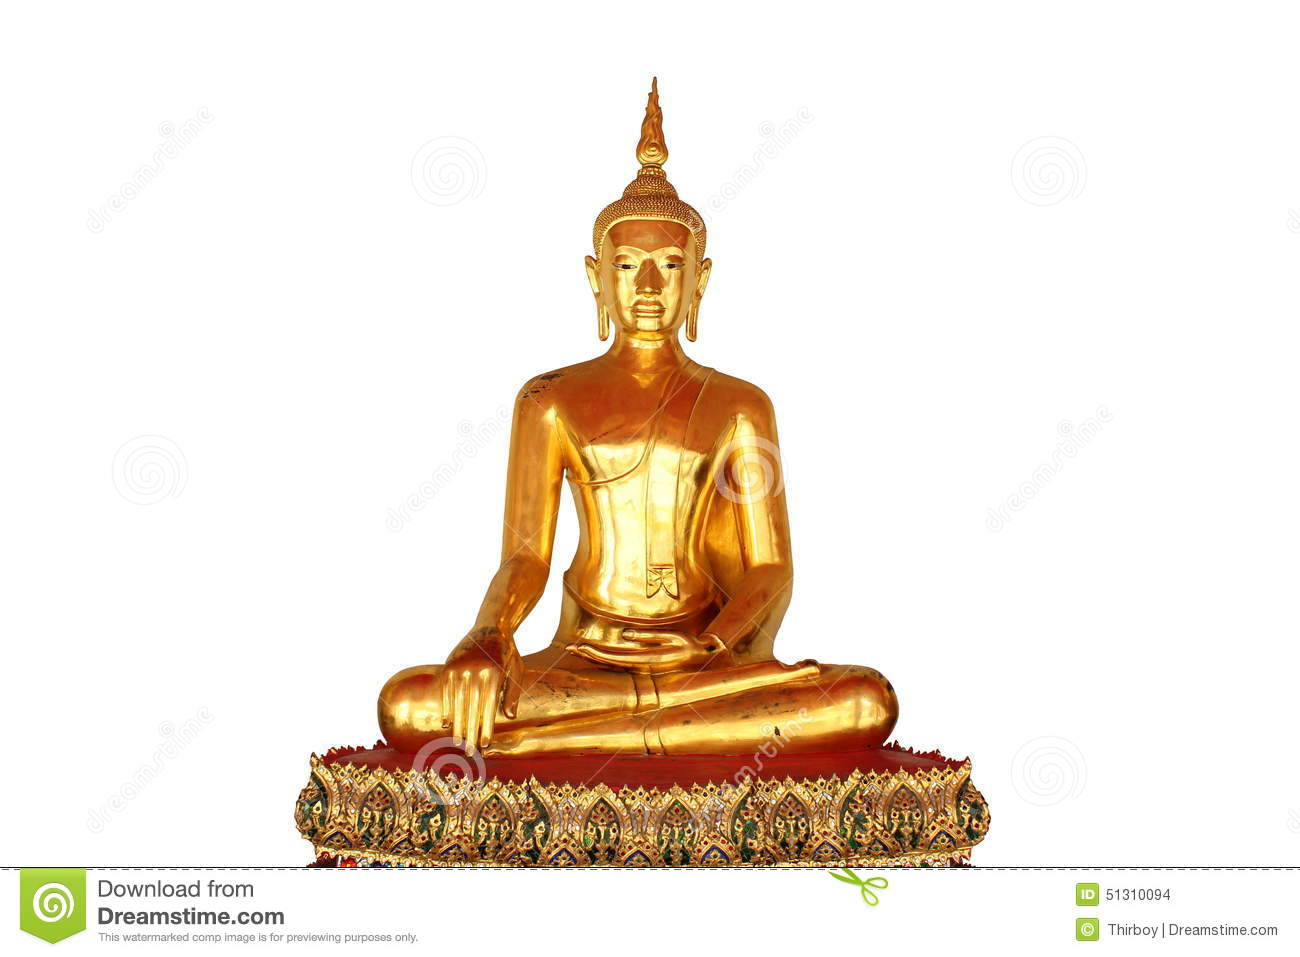 buddhist singles in perryman Perryman's best 100% free black dating site hook up with sexy black singles in perryman, maryland, with our free dating personal ads mingle2com is full of hot black guys and girls in perryman looking for love, sex, friendship, or a friday night date.